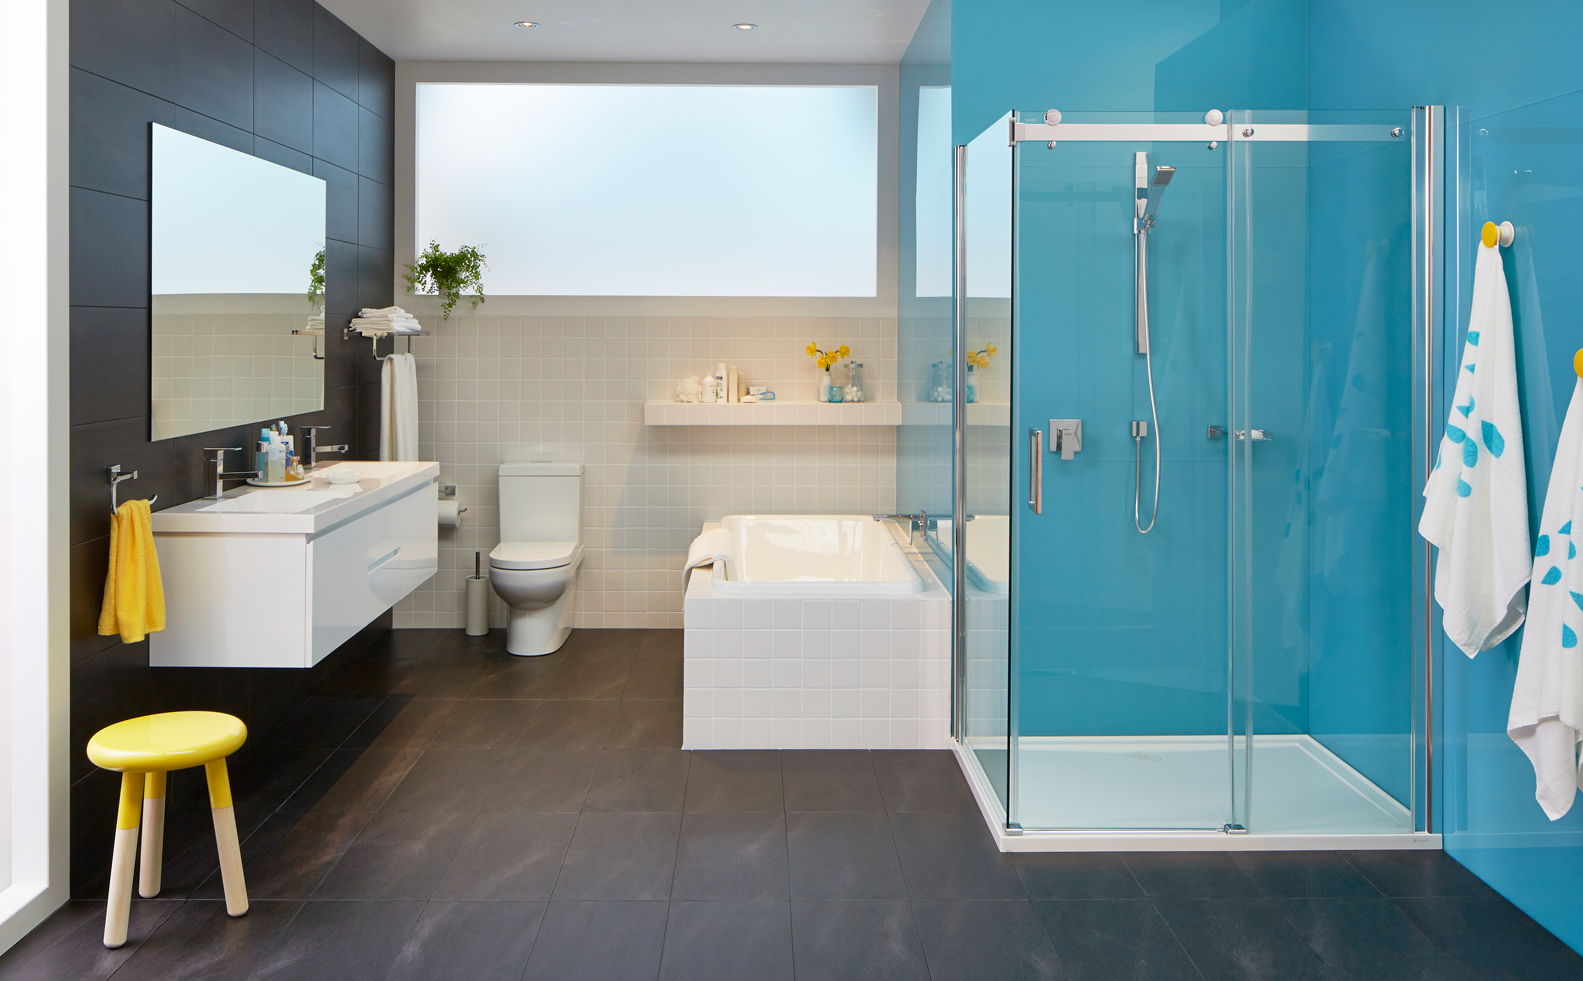 Bathroom inspiration gallery bunnings colour blue floor tiles bathroom inspiration gallery bunnings colour blue floor tiles dailygadgetfo Gallery